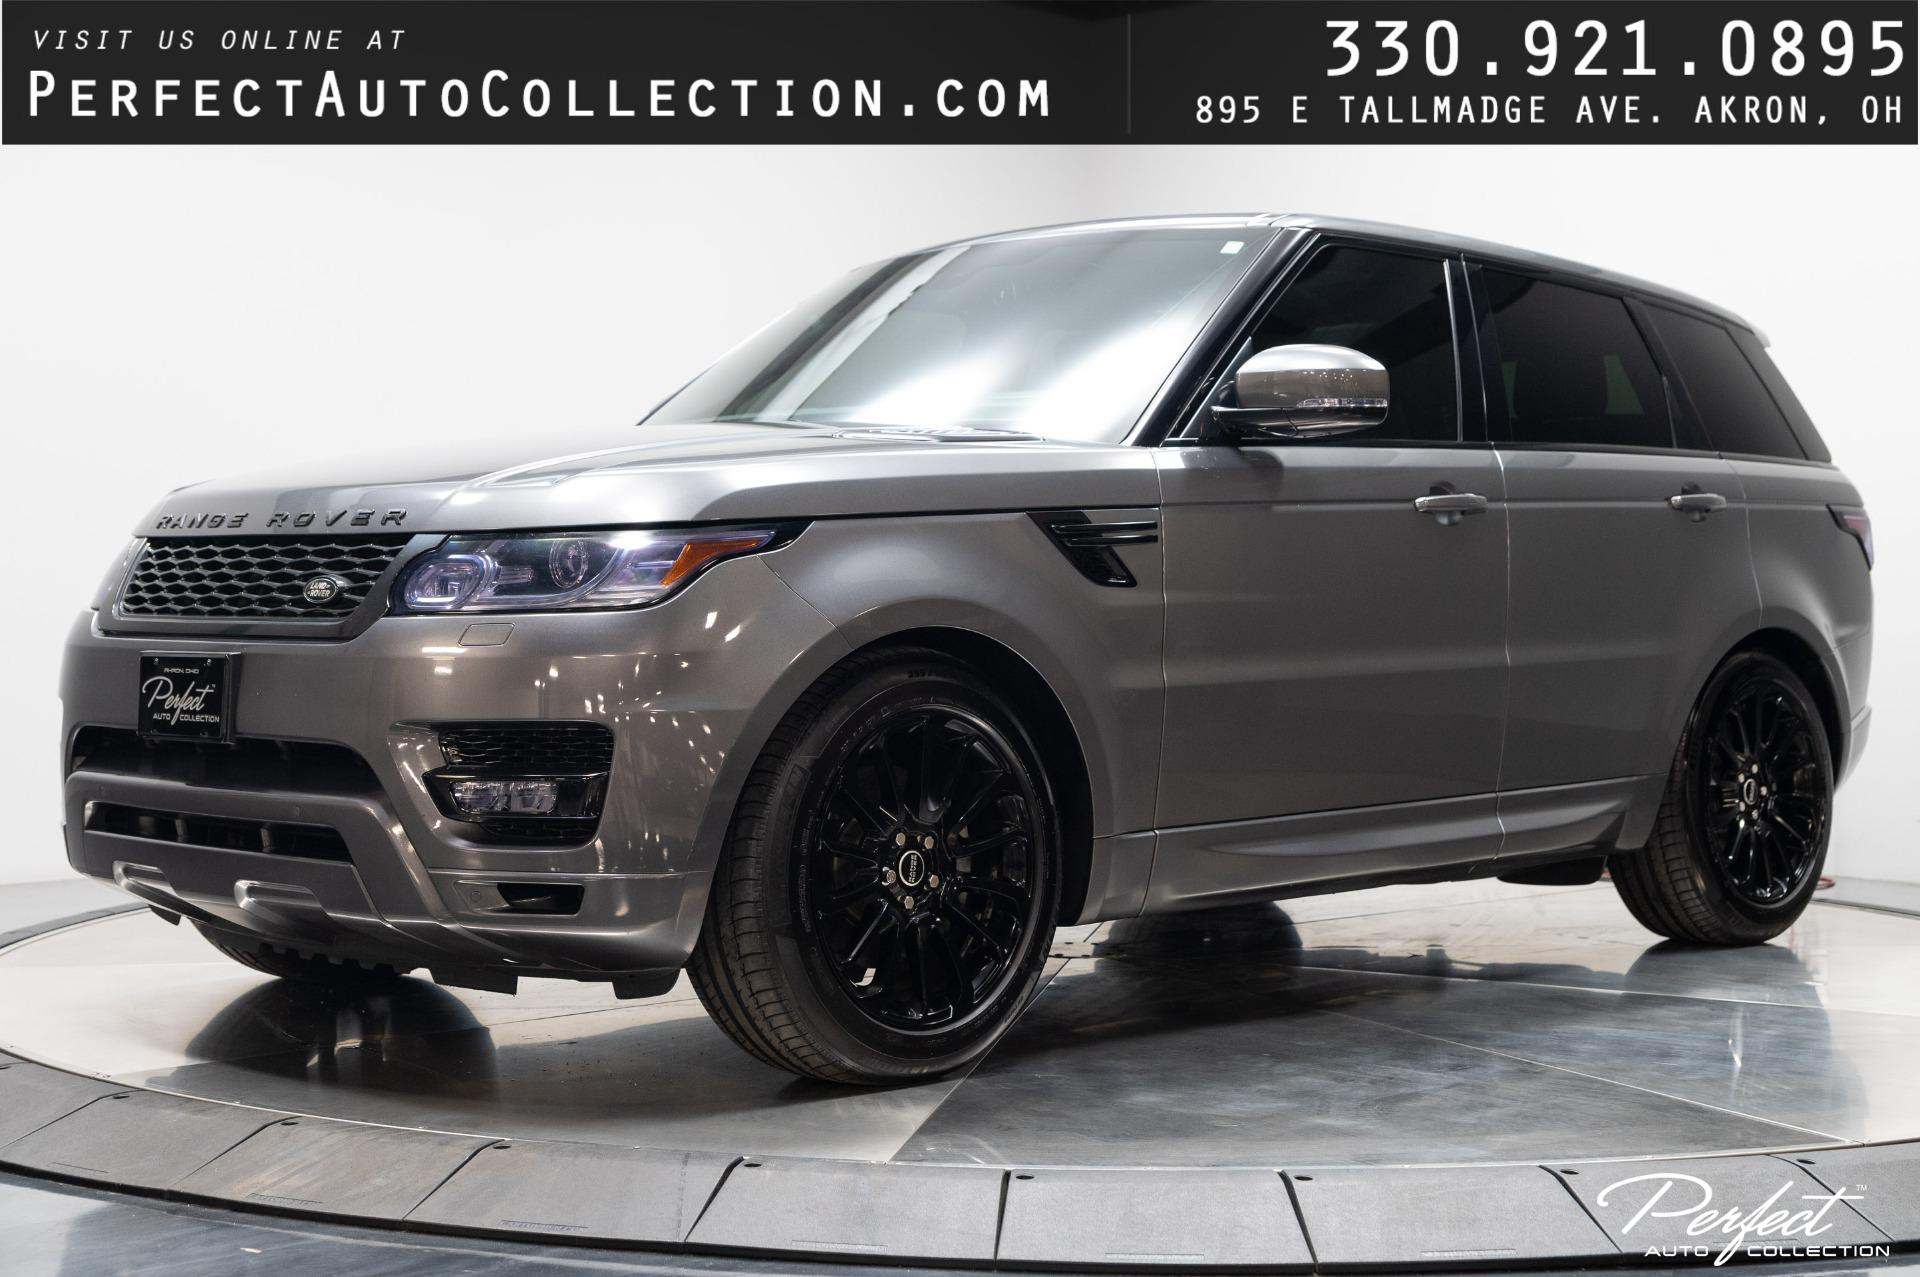 Used 2014 Land Rover Range Rover Sport HSE for sale $33,995 at Perfect Auto Collection in Akron OH 44310 1